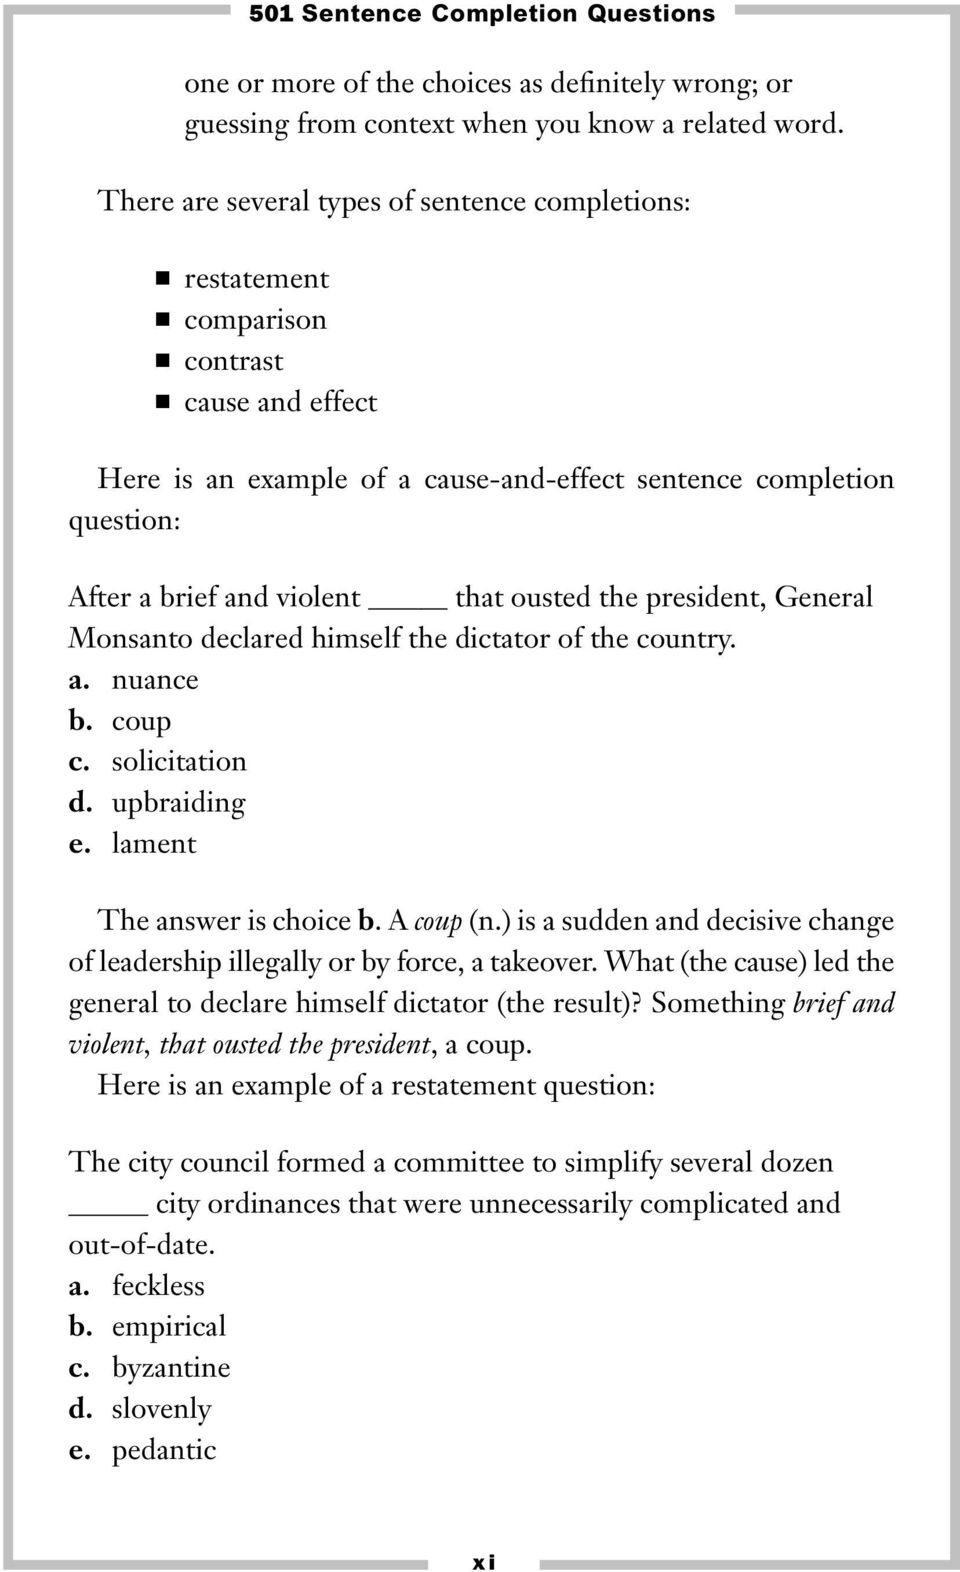 nuance sentence examples